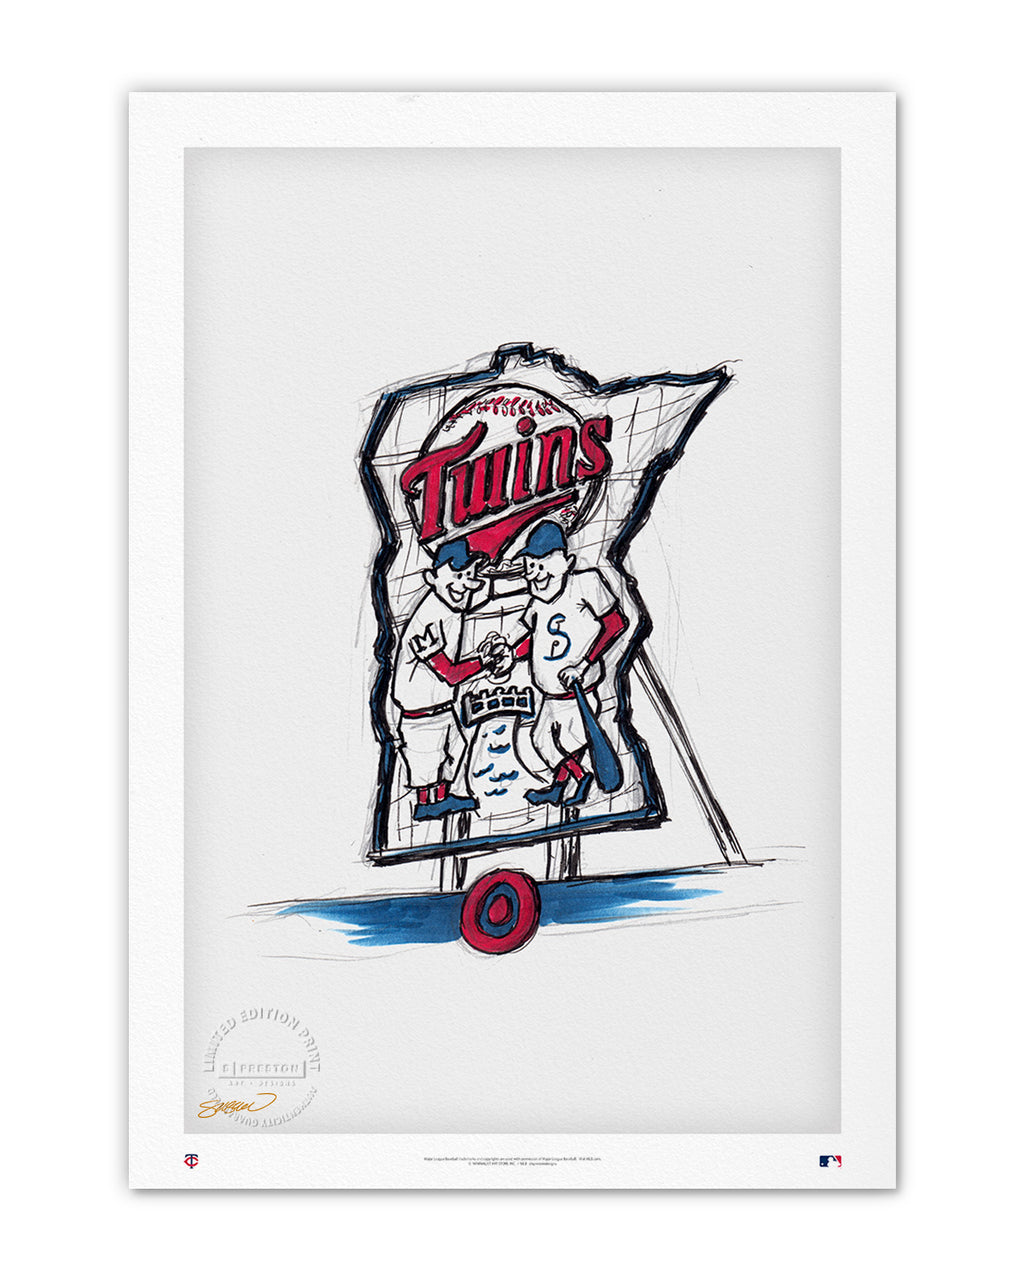 Target Field Ink Sketch (Minnie and Paul)